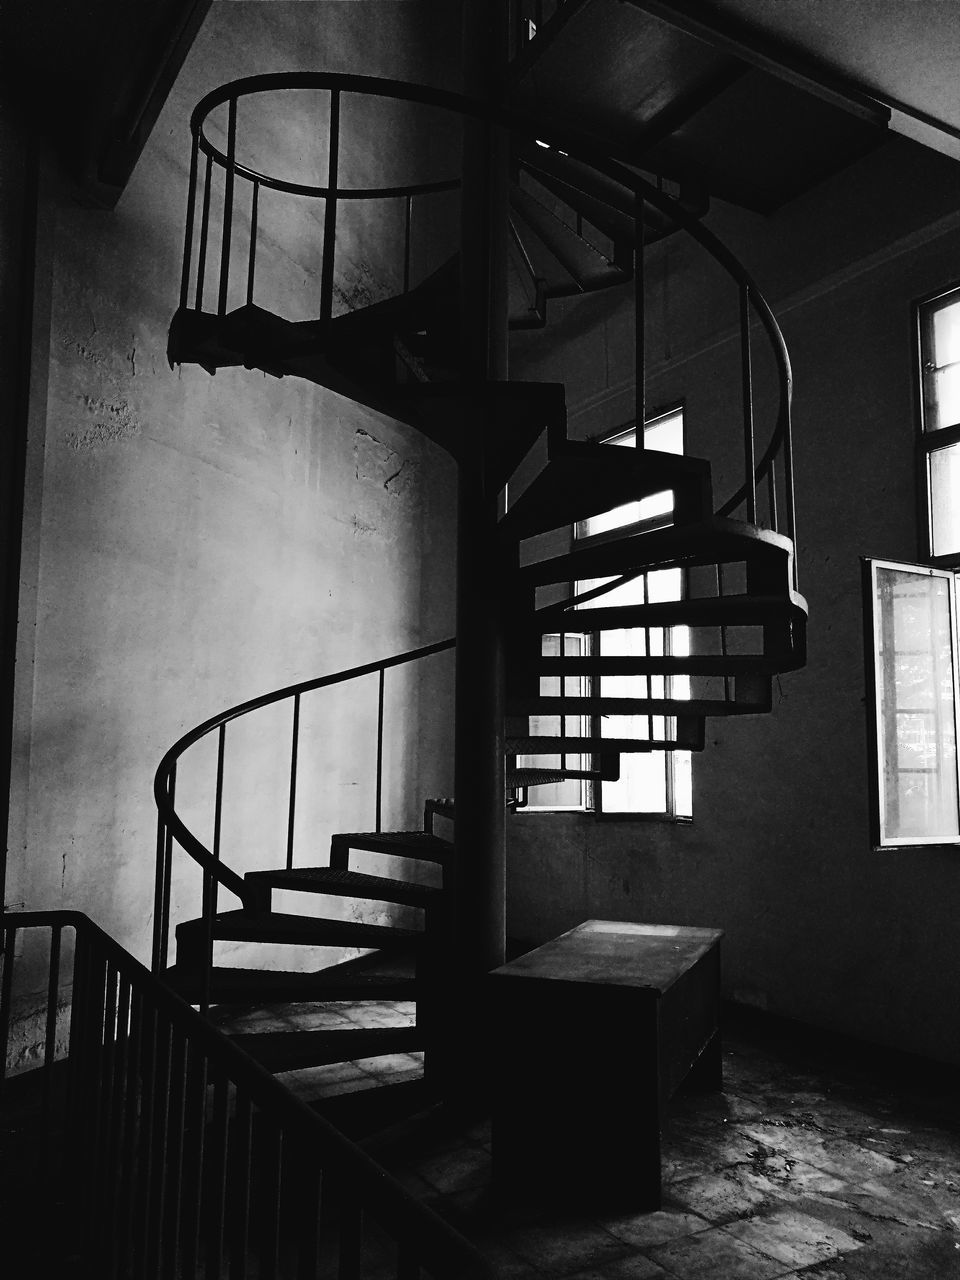 Low Angle View Of Steps In Old Abandoned Building